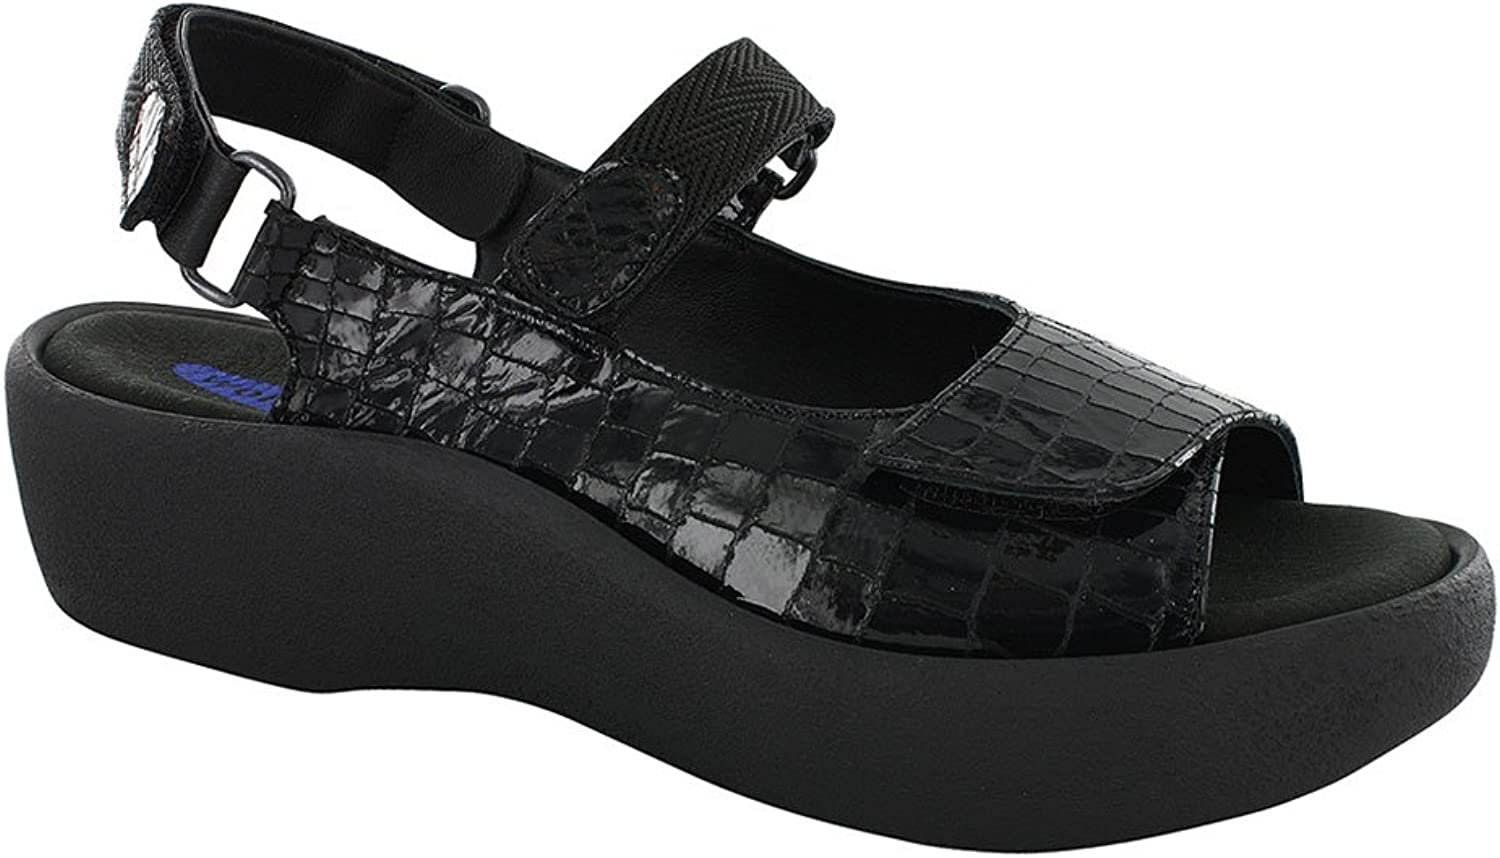 Wolky Women's Black Croco Jewel 42 M EU